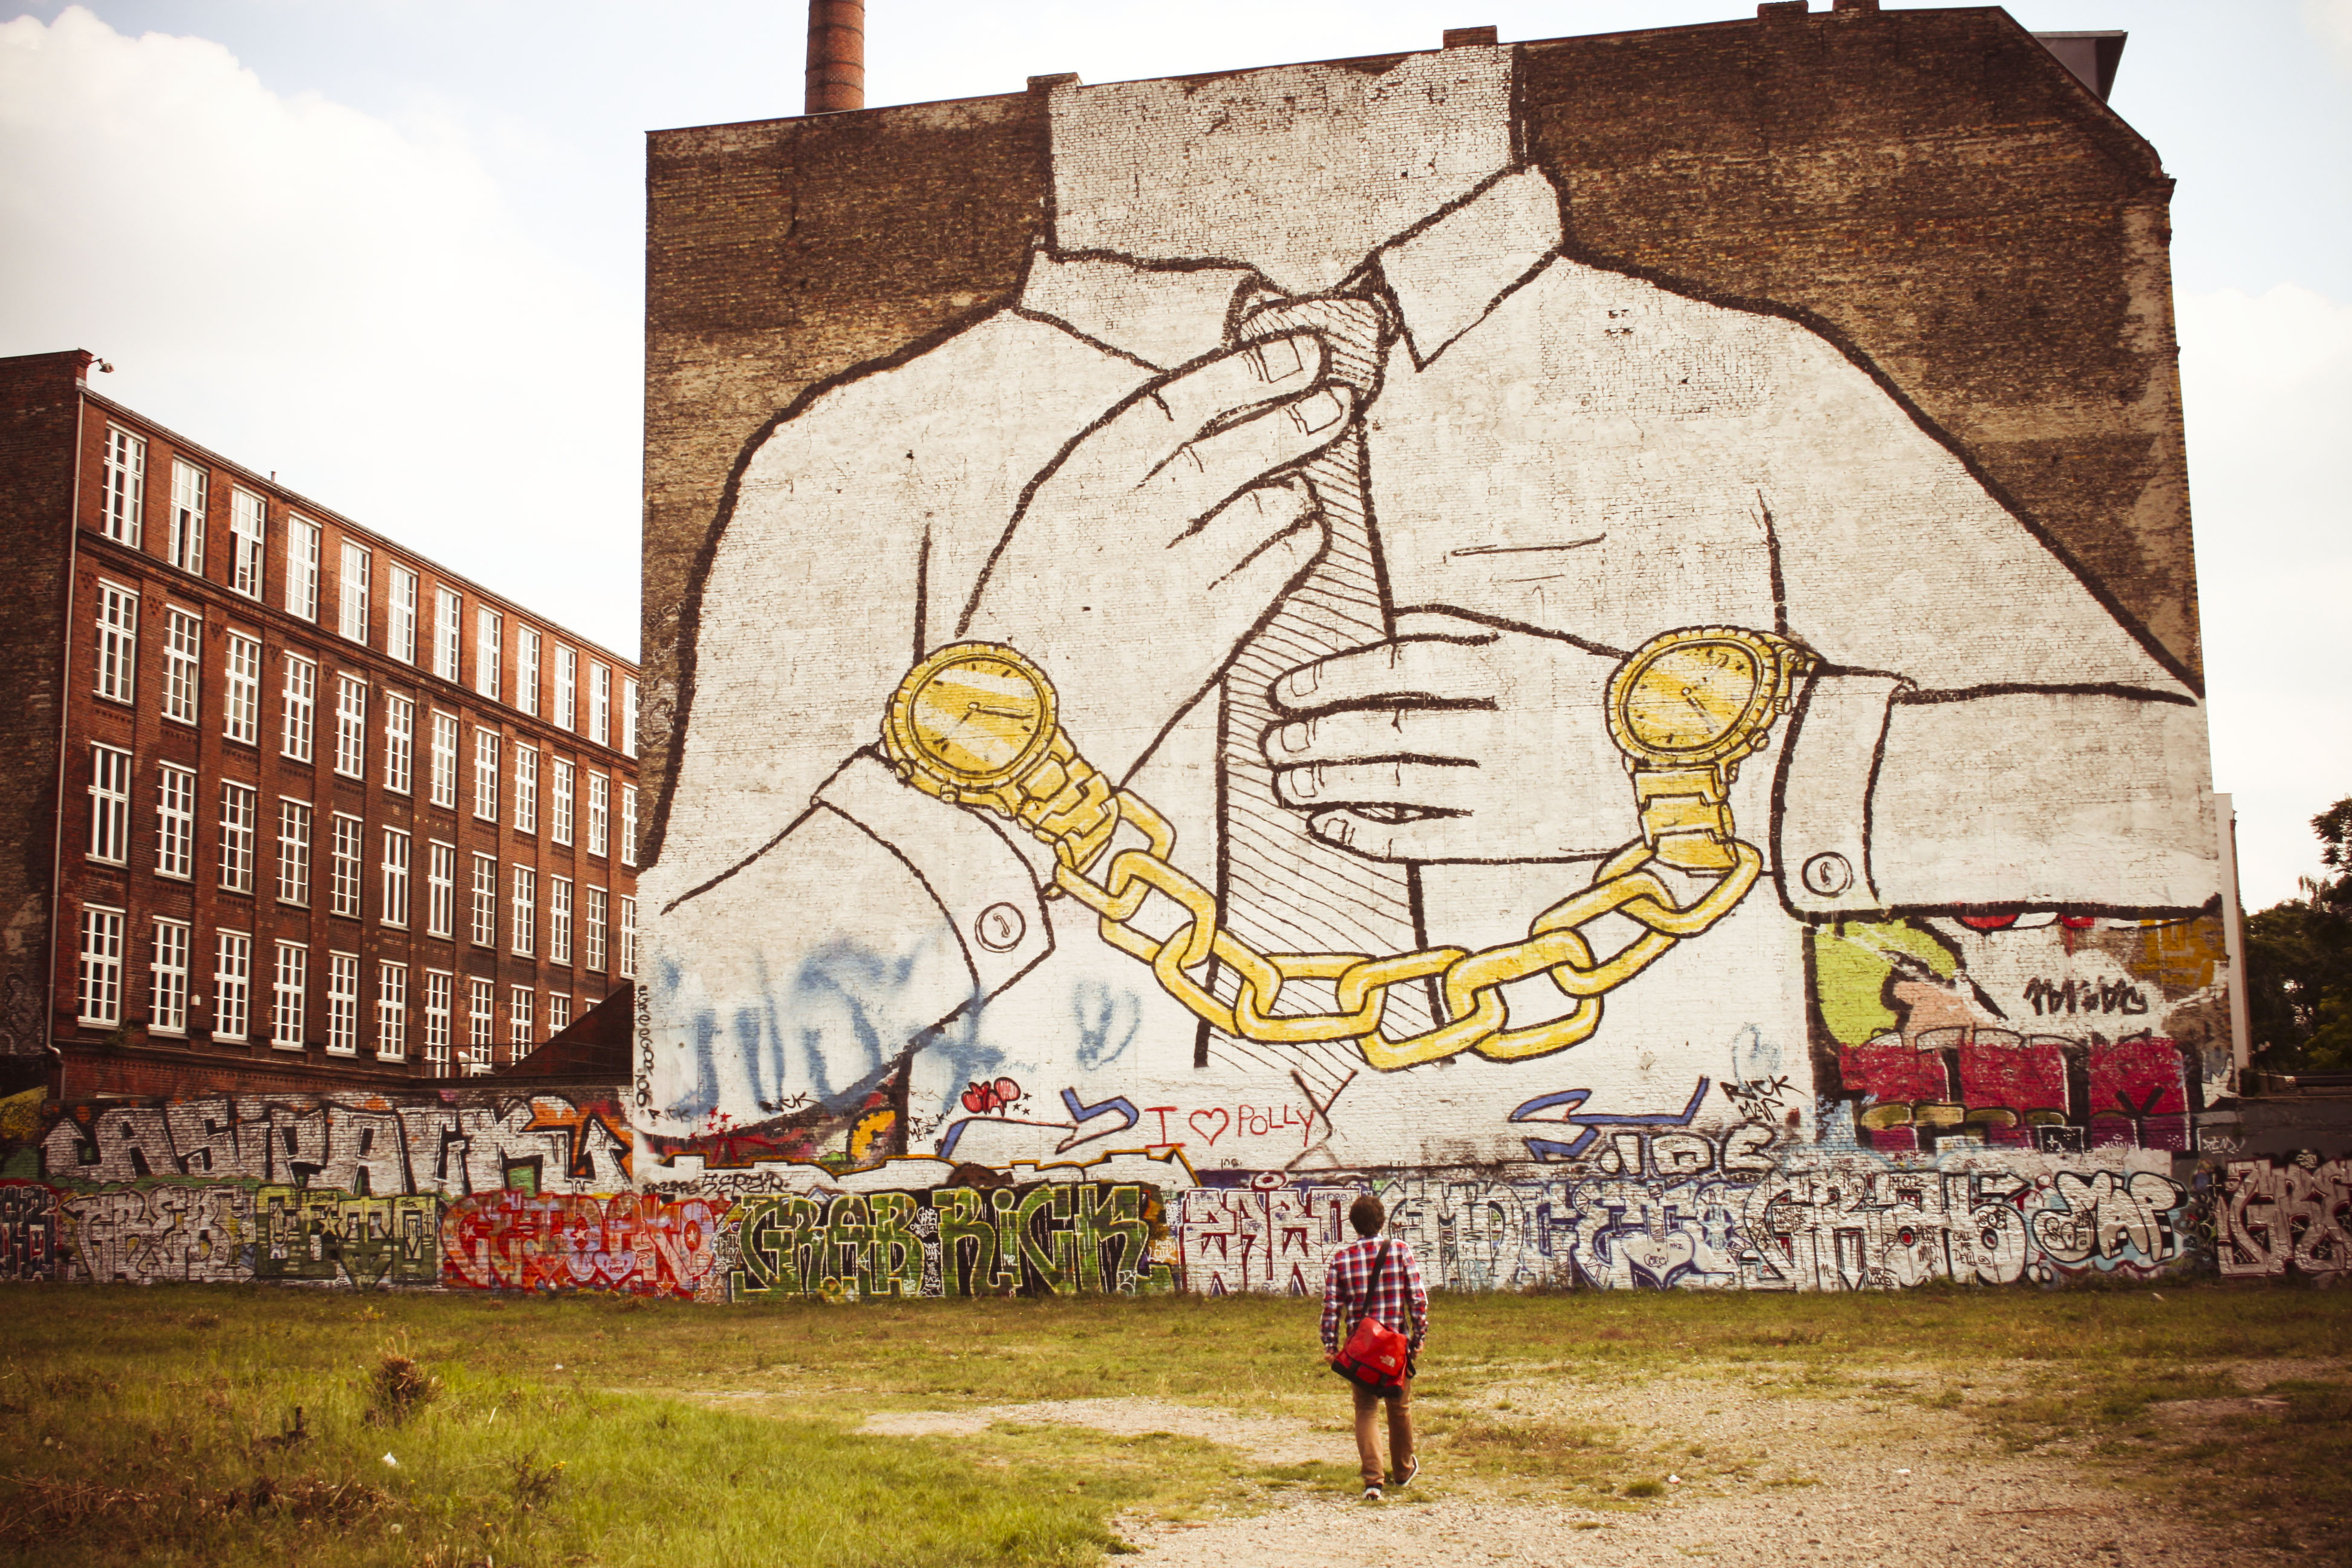 Top 5 Countries to Admire Street Art Guerrilla Marketing Photo